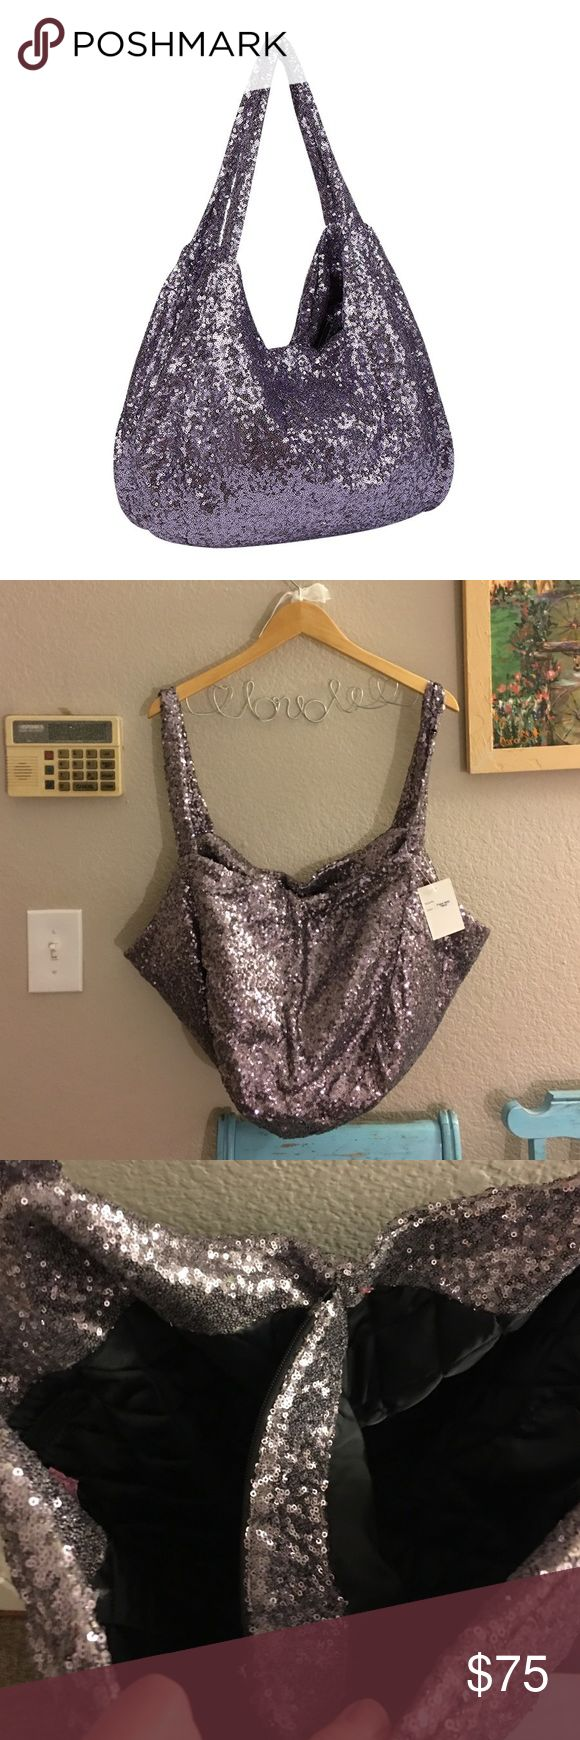 🎀🆕melie bianco Sequined Hobo Bag🎀 This is a gorgeous, pewter colored, sequined bag that inside is basically divided into 2 separate parts which are separated be a large zippered pouch. There's another zippered compartment on one side and in the other half are 2 open compartments for cell phones or makeup. Lined in quilted black, an absolutely gorgeous, standout bag!! Melie Bianco Bags Hobos